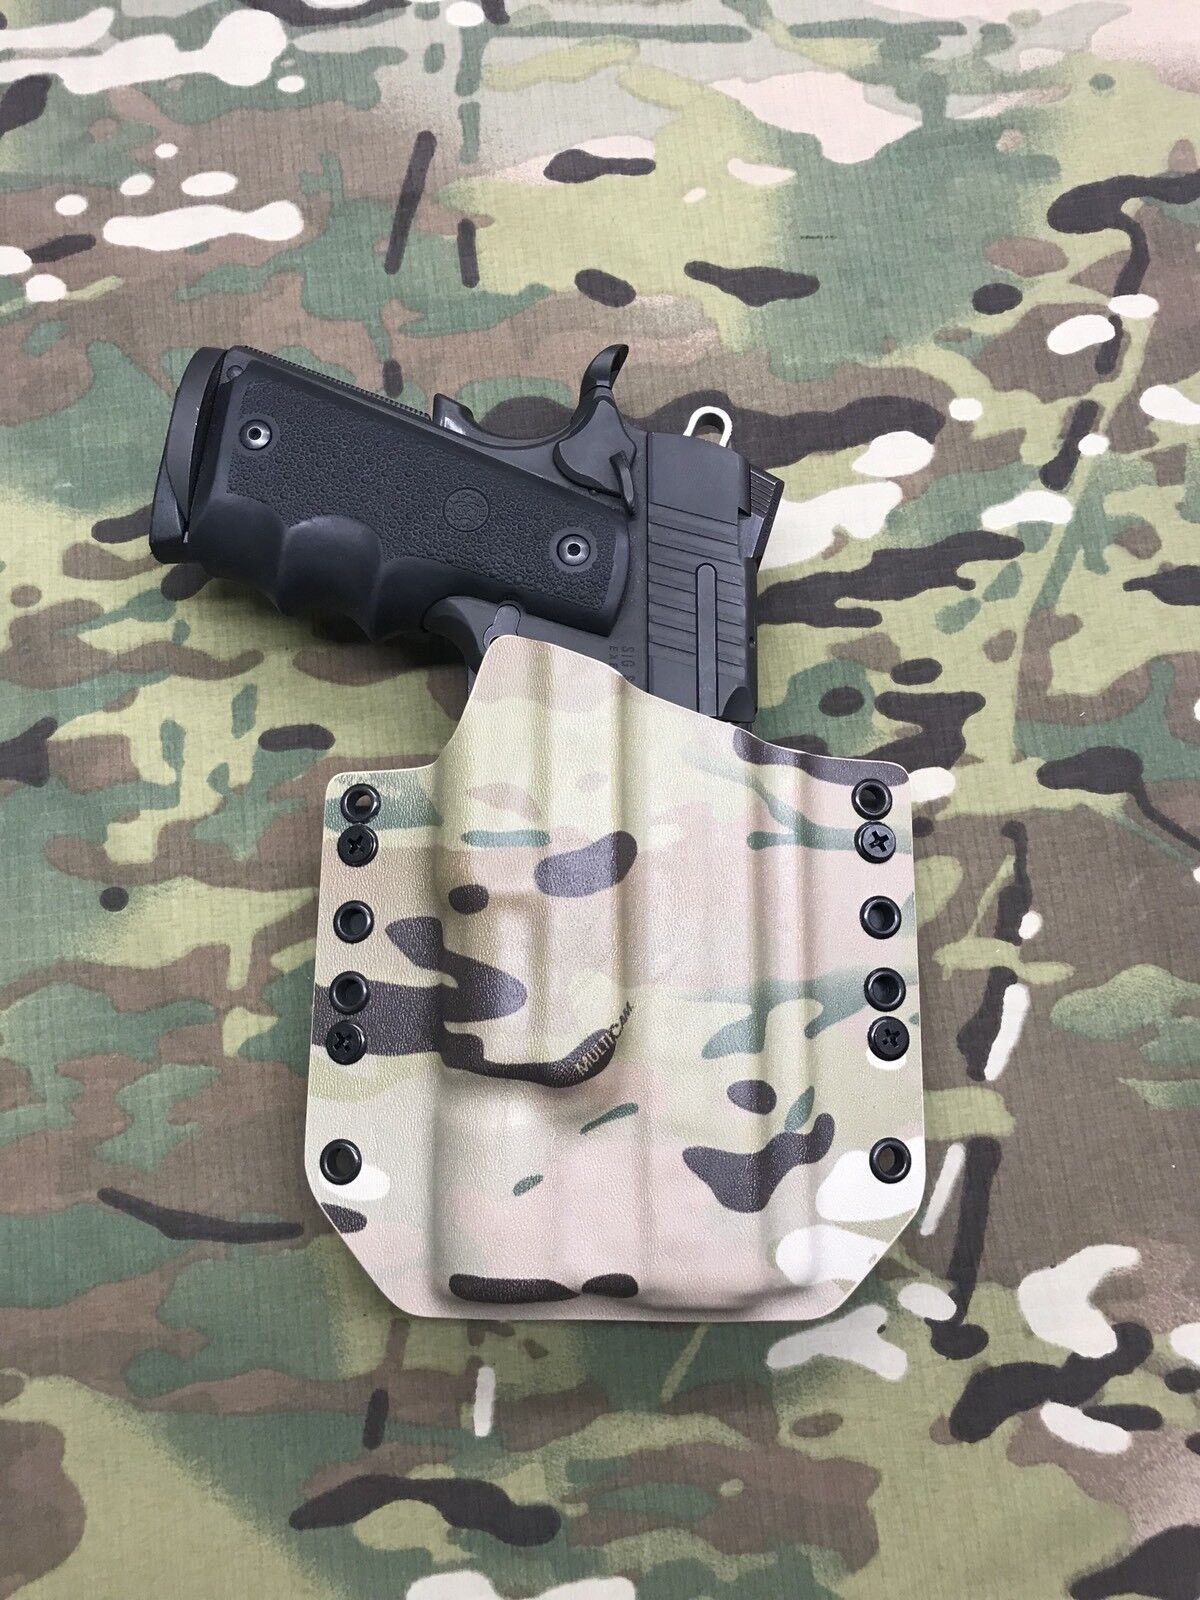 Multicam Kydex Holster for Standard 5